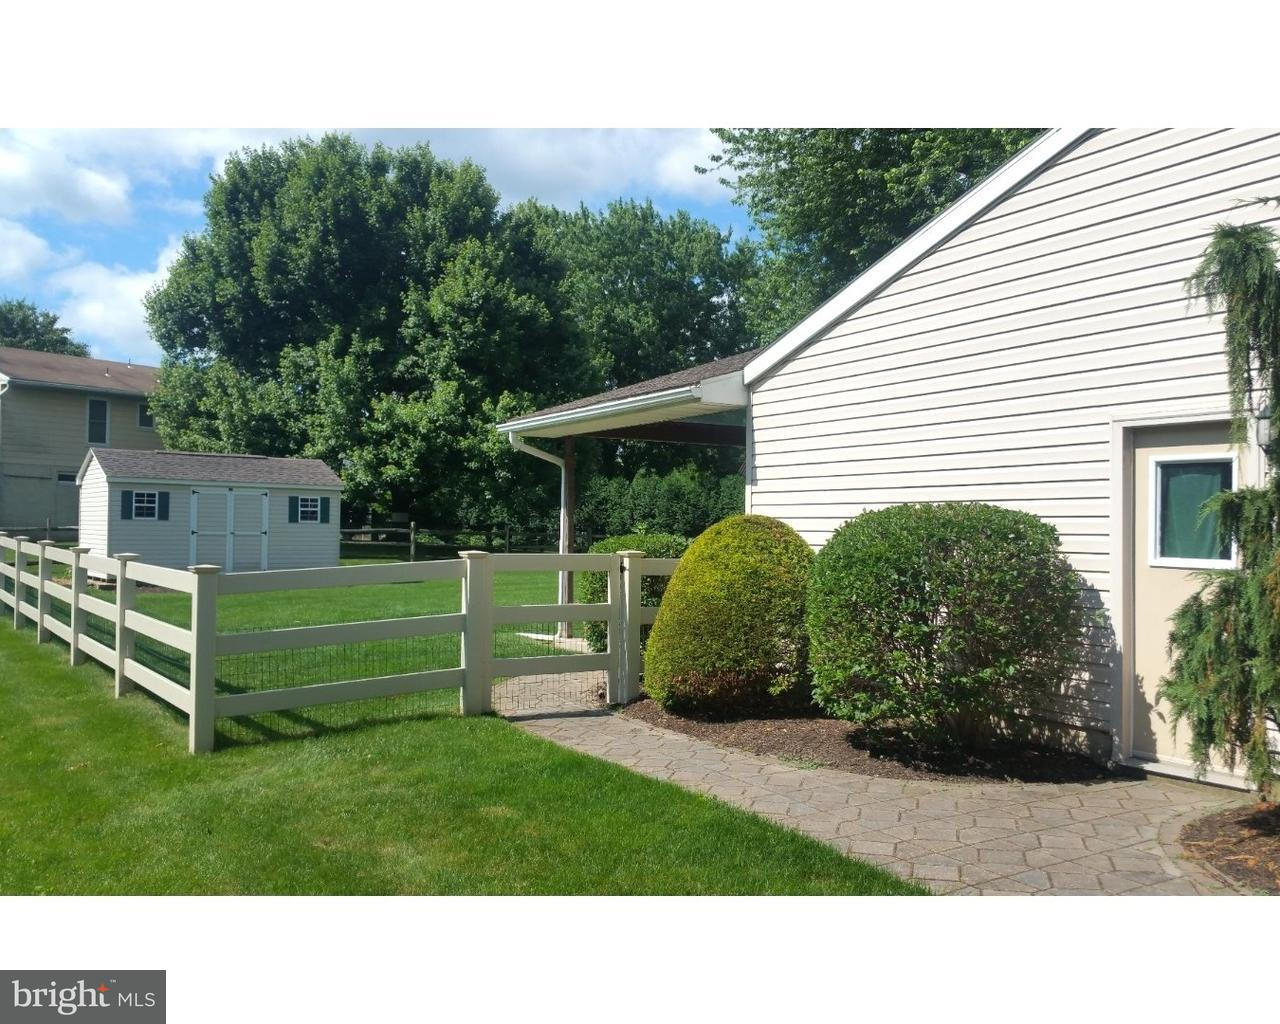 812 N RICHMOND ST, FLEETWOOD - Listed at $199,500, FLEETWOOD